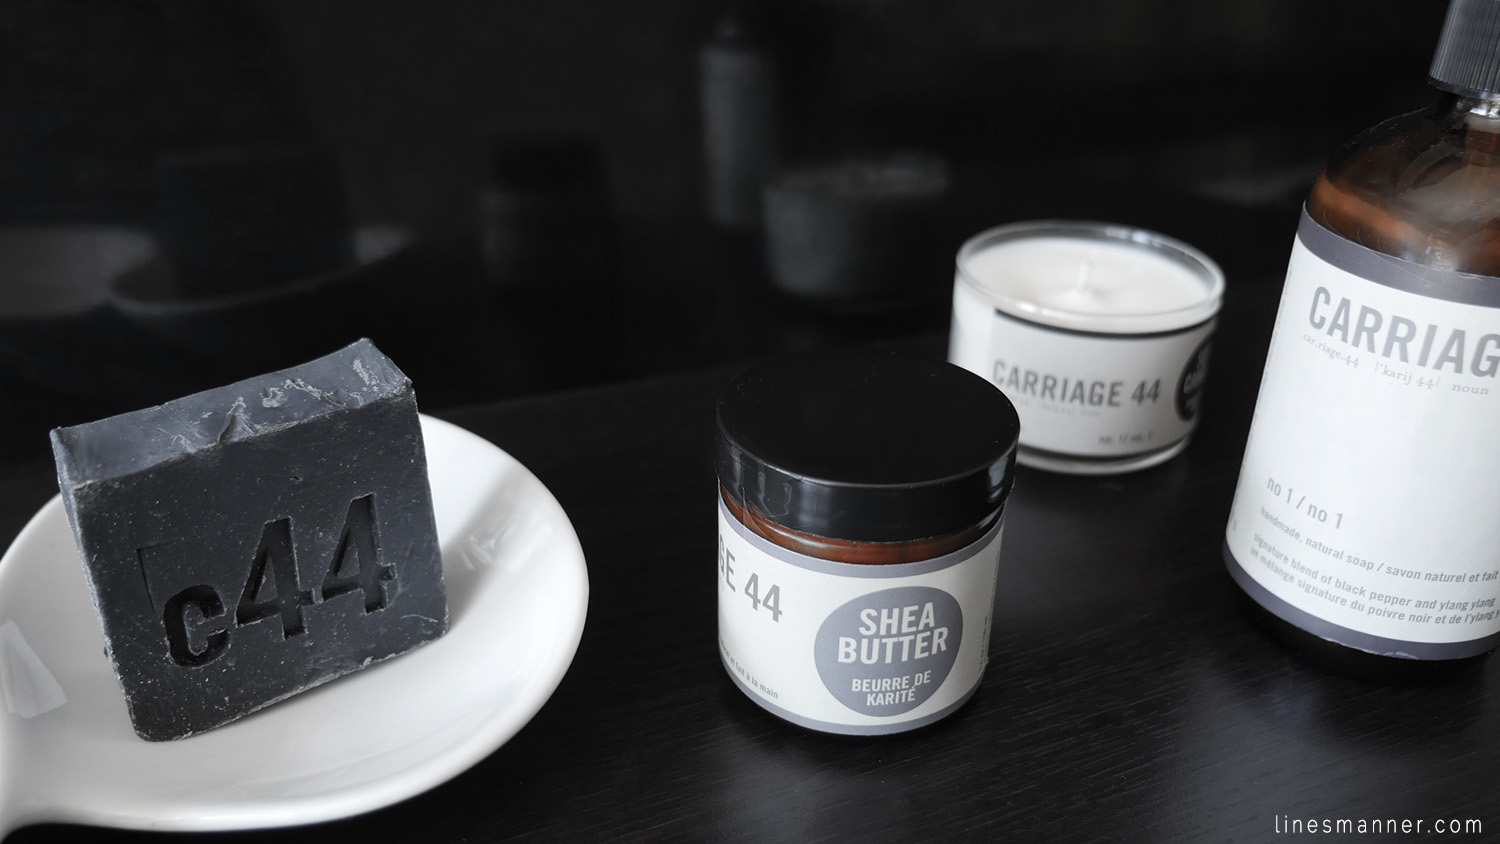 Lines-Manner-Carriage_44-Handcrafted-Design-Skin_care-Soap-Candles-Shea_ButterDesigners-Minimalist-Handmade-Environmentally_friendly-Natural-Products-Scents-Simplicity-Quality-3